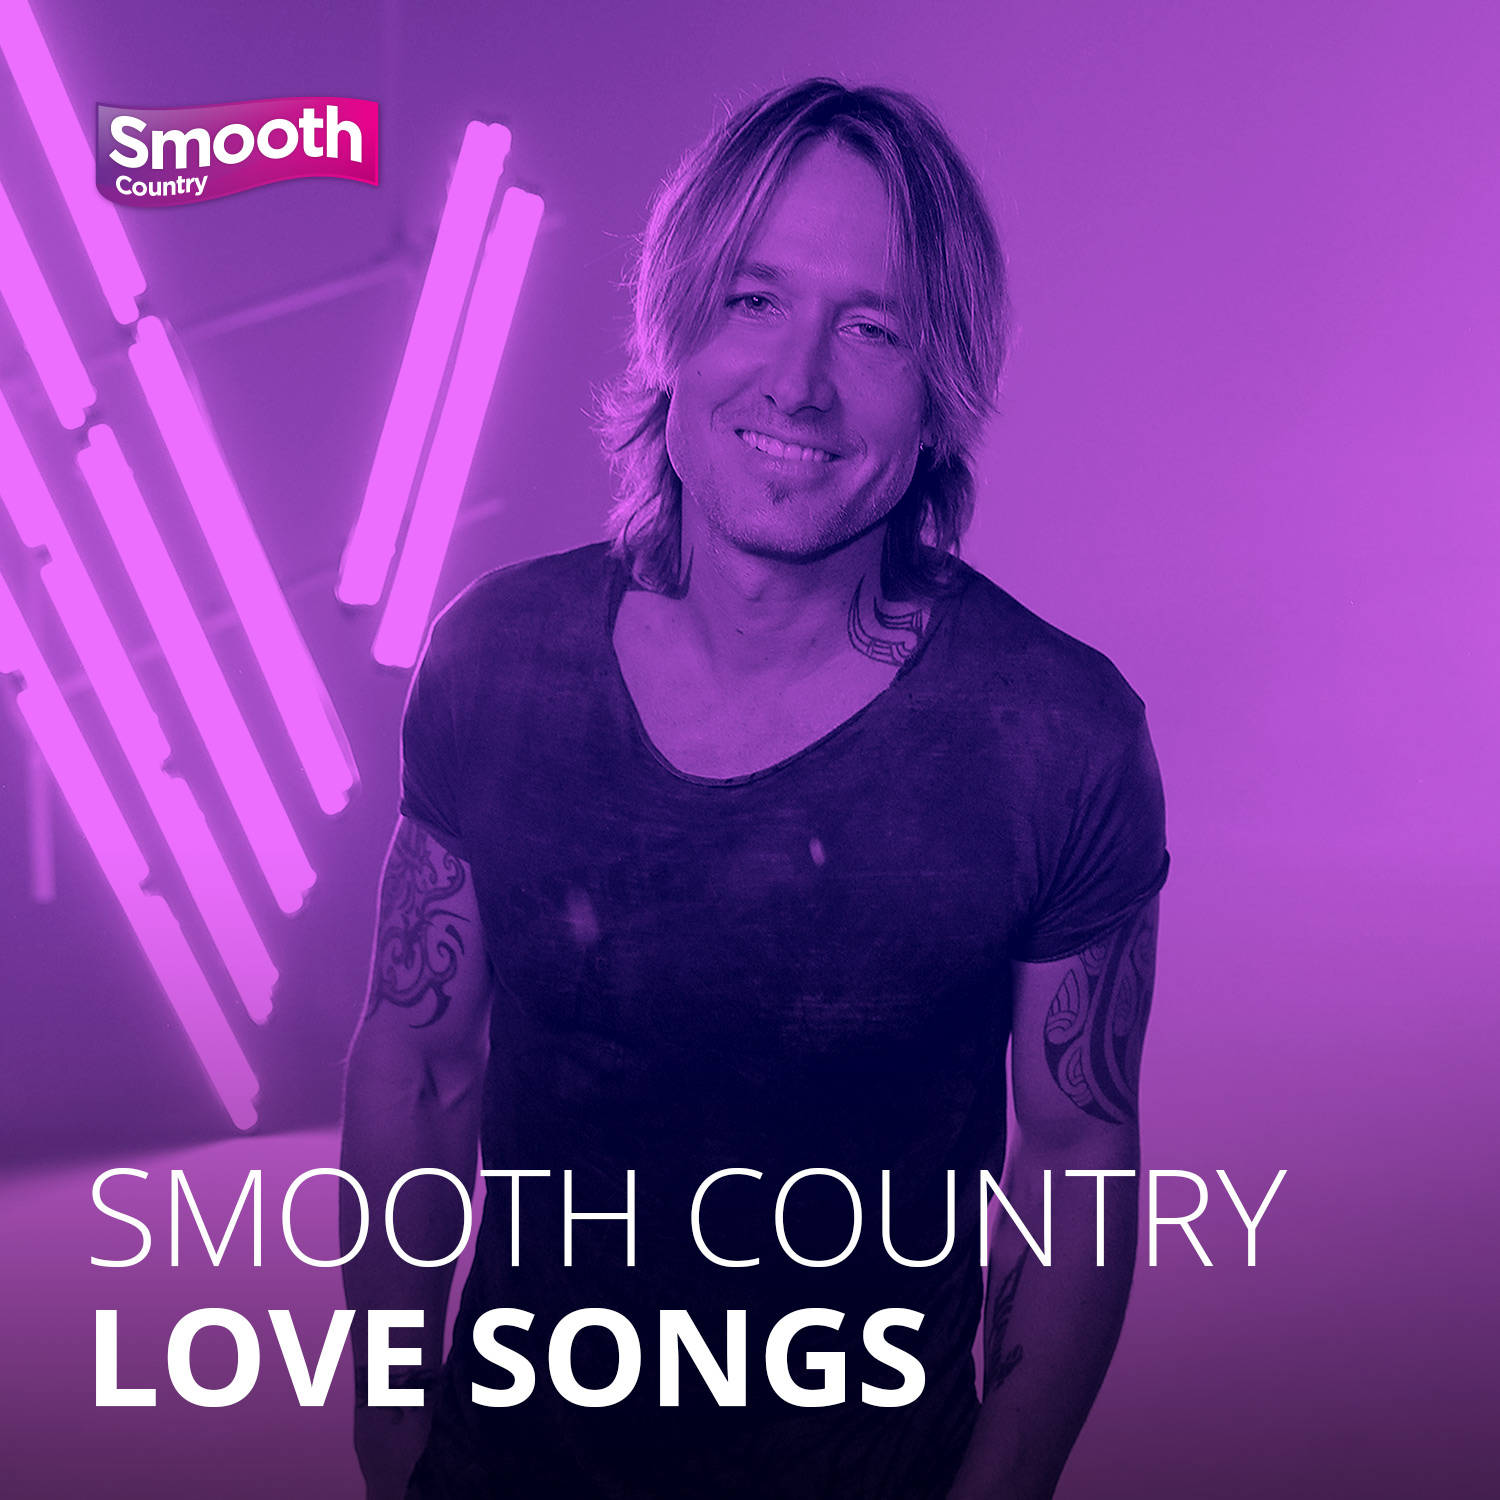 Smooth Country Love Songs image